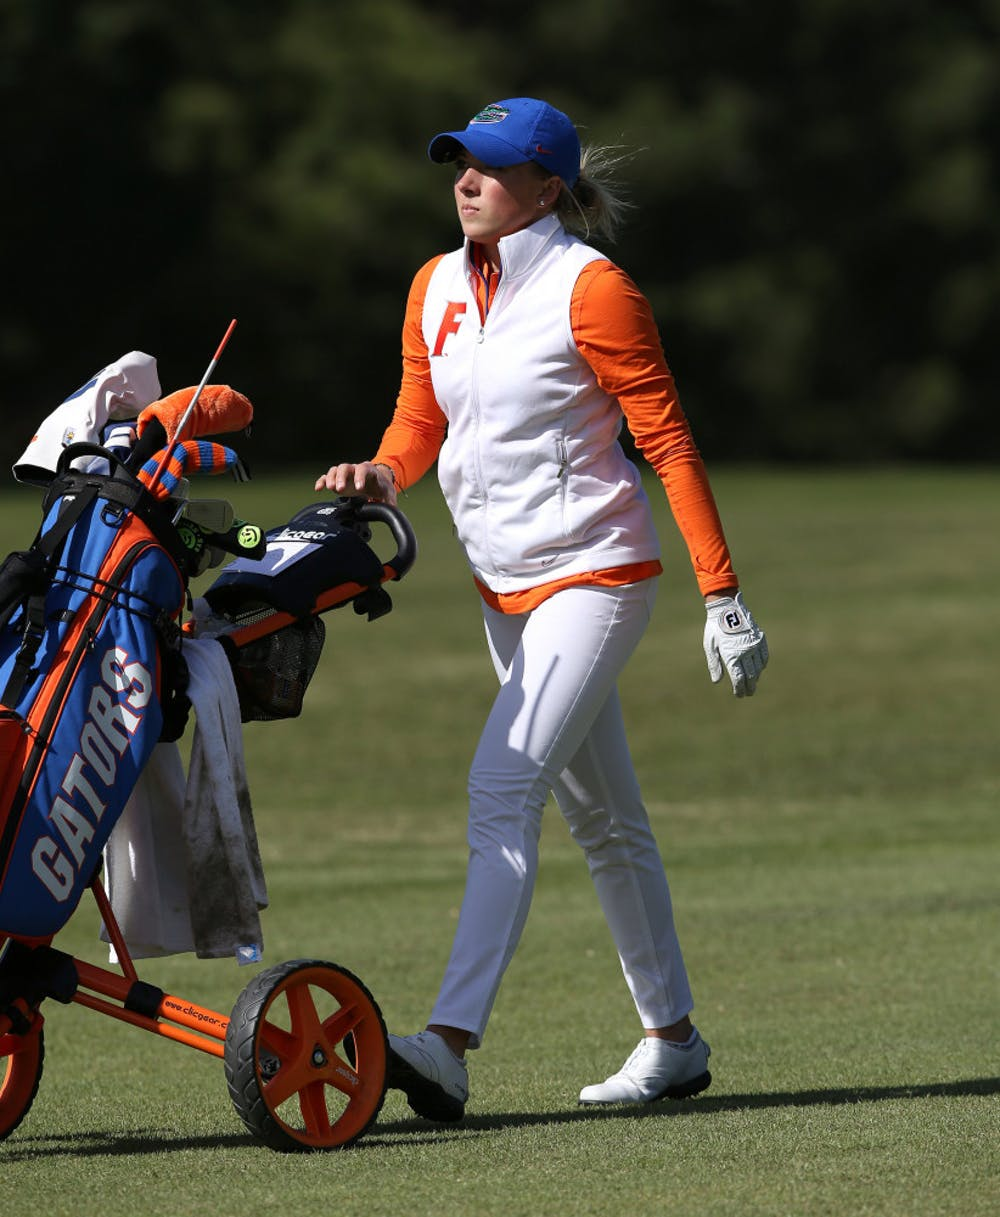 <p>Sophomore Sierra Brooks performed admirably, but the Gators struggled as a team on Day 1 of the Liz Murphey Collegiate Classic.</p>